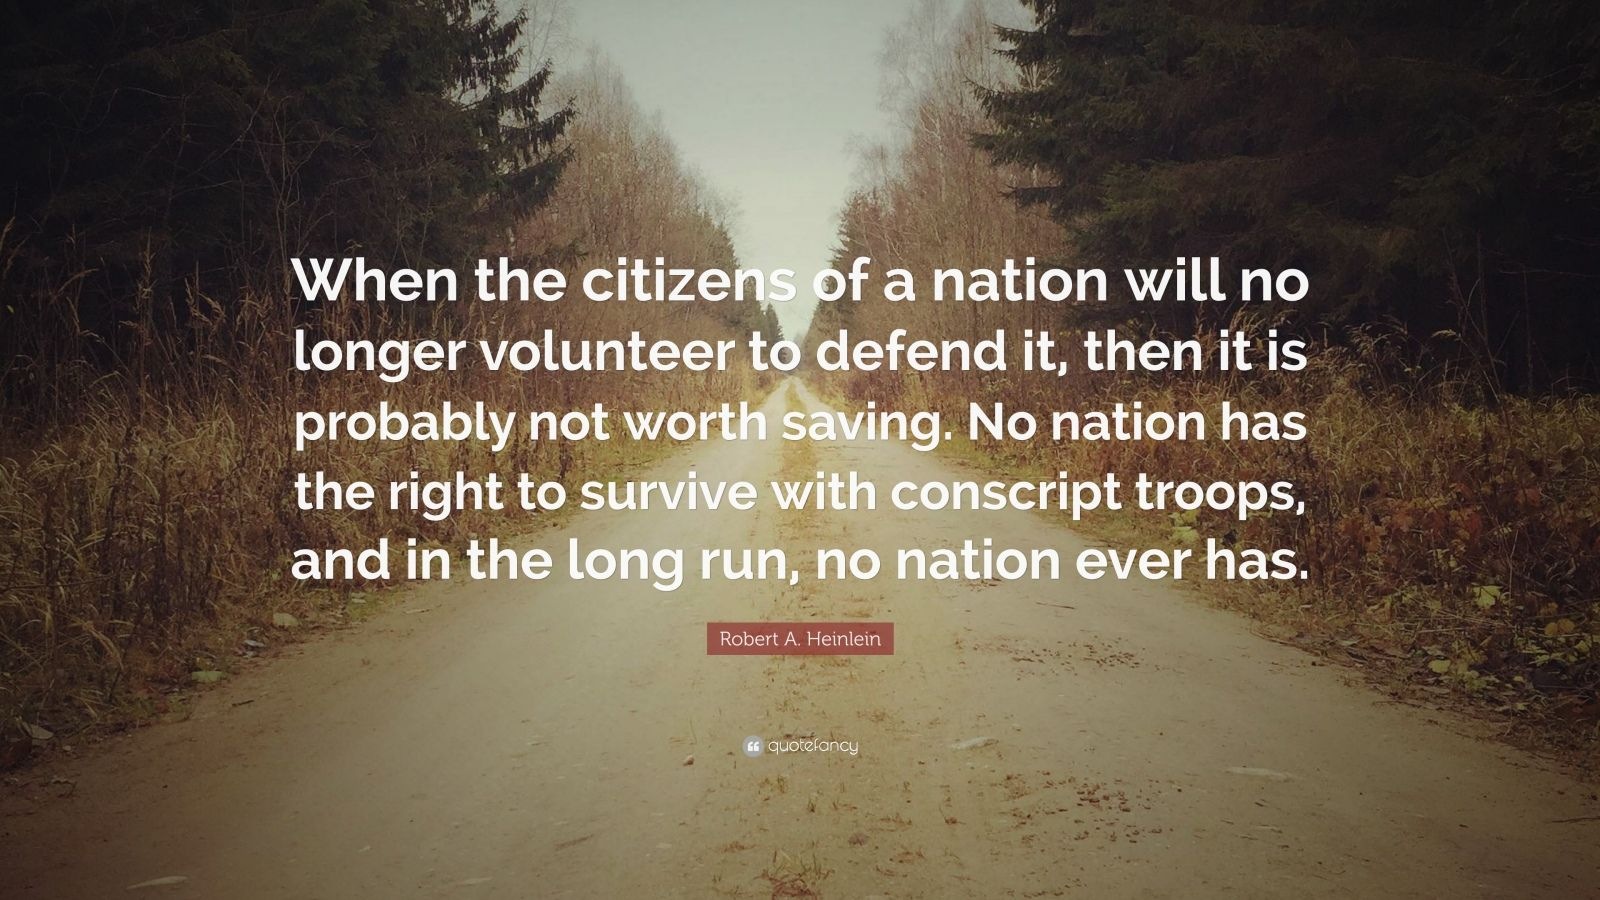 """Robert A. Heinlein Quote: """"When the citizens of a nation will no longer volunteer to defend it, then it is probably not worth saving. No nation has the right to survive with conscript troops, and in the long run, no nation ever has."""""""